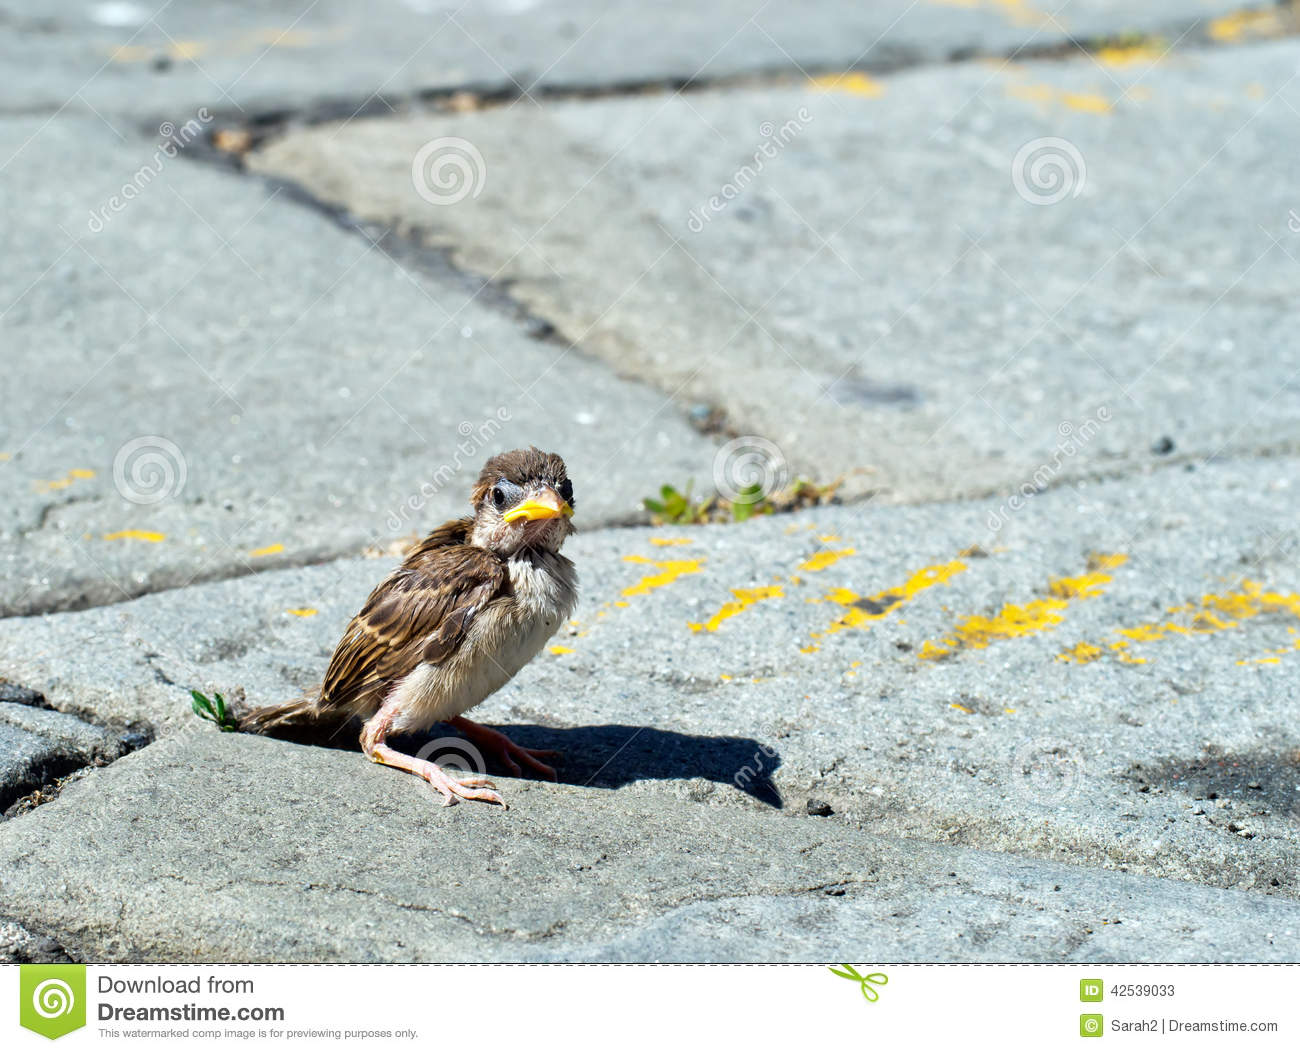 One Fallen Sparrow In Street Biblical Parable Or Metaphor Maybe